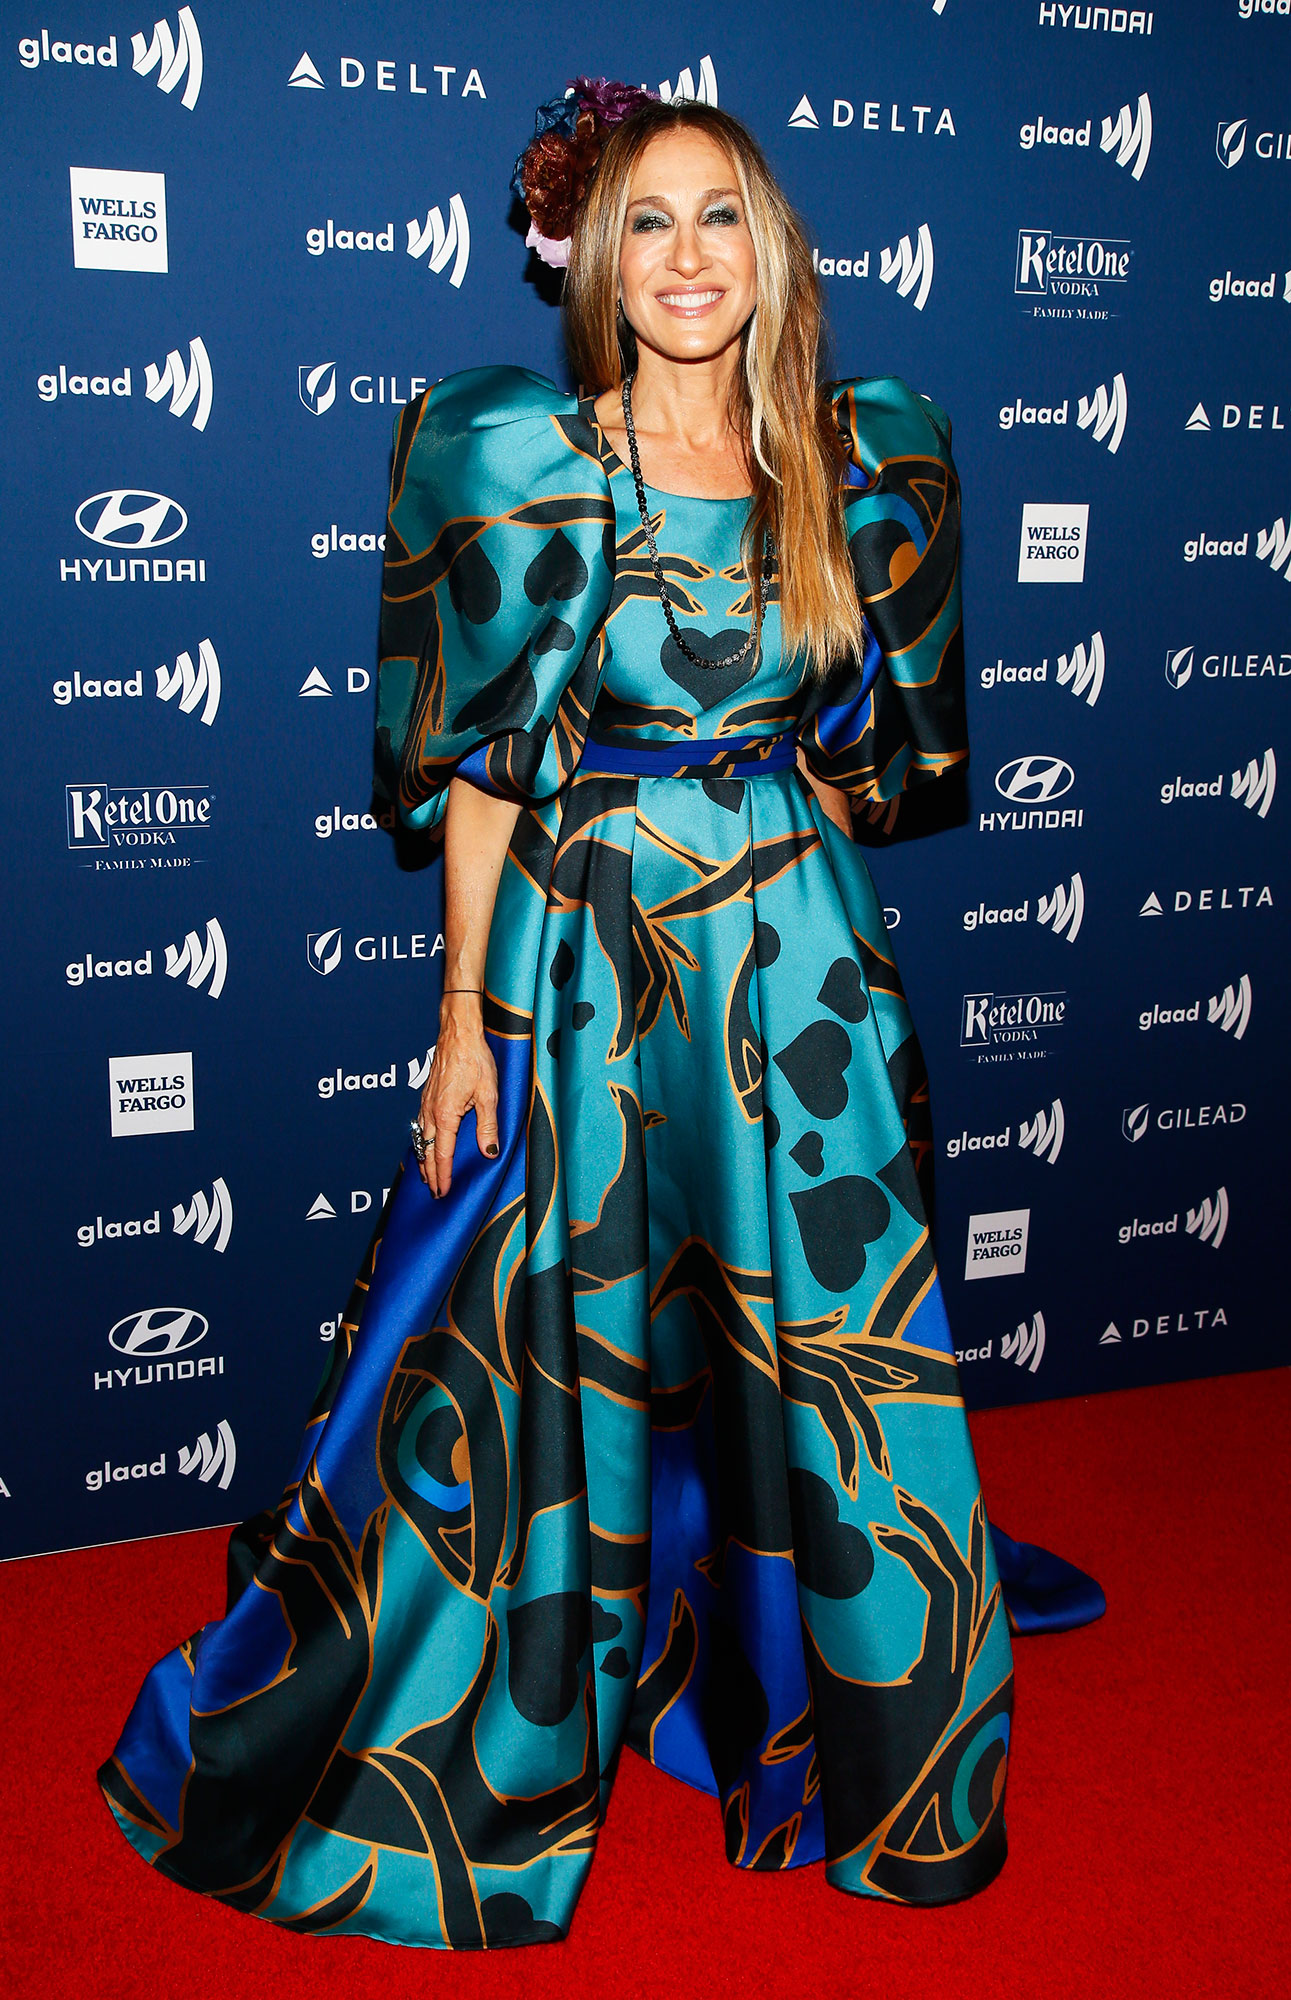 See the Stars at the GLAAD Awards Sarah Jessica Parker - Wearing a heart-printed Elie Saab gown.